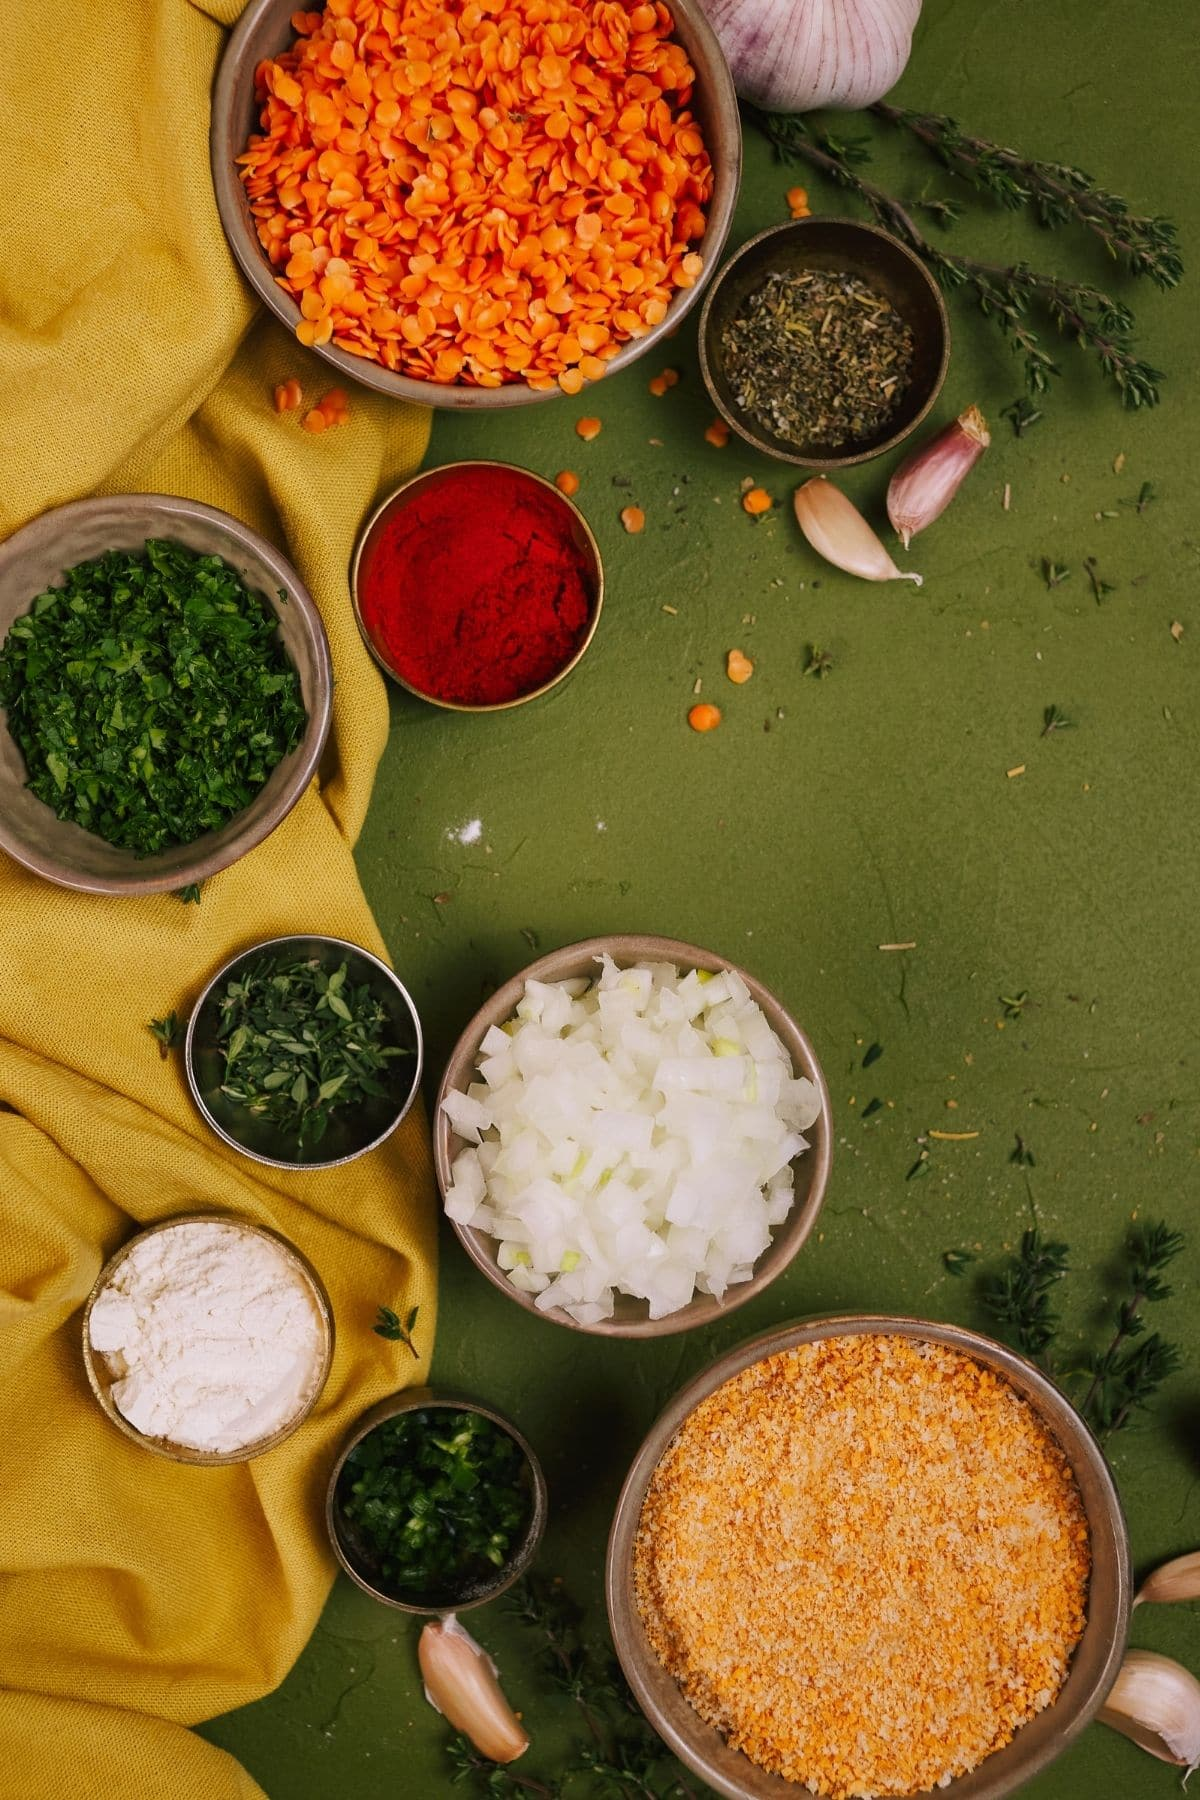 Ingredients in small bowls on green tablecloth